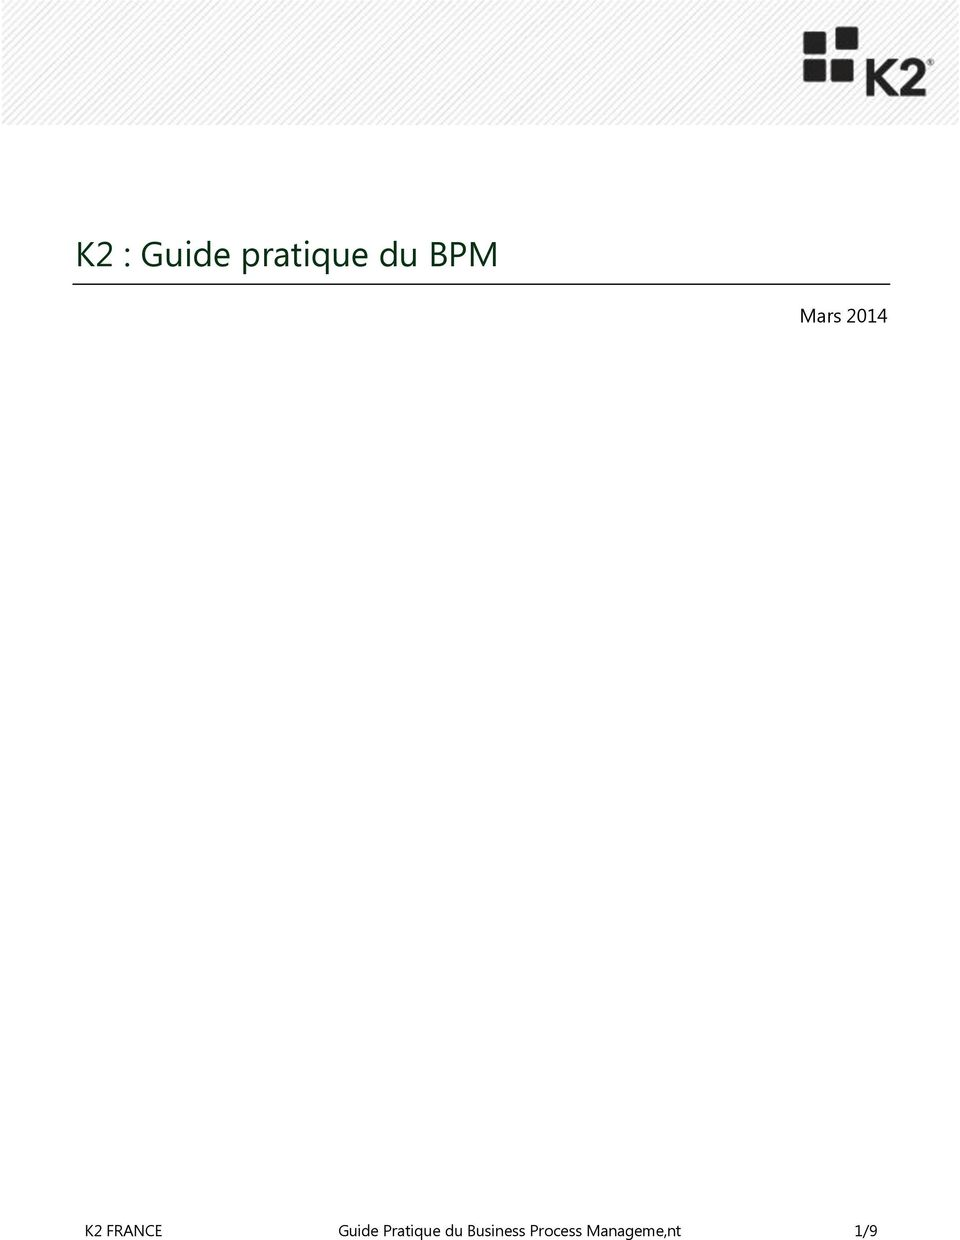 Guide Pratique du